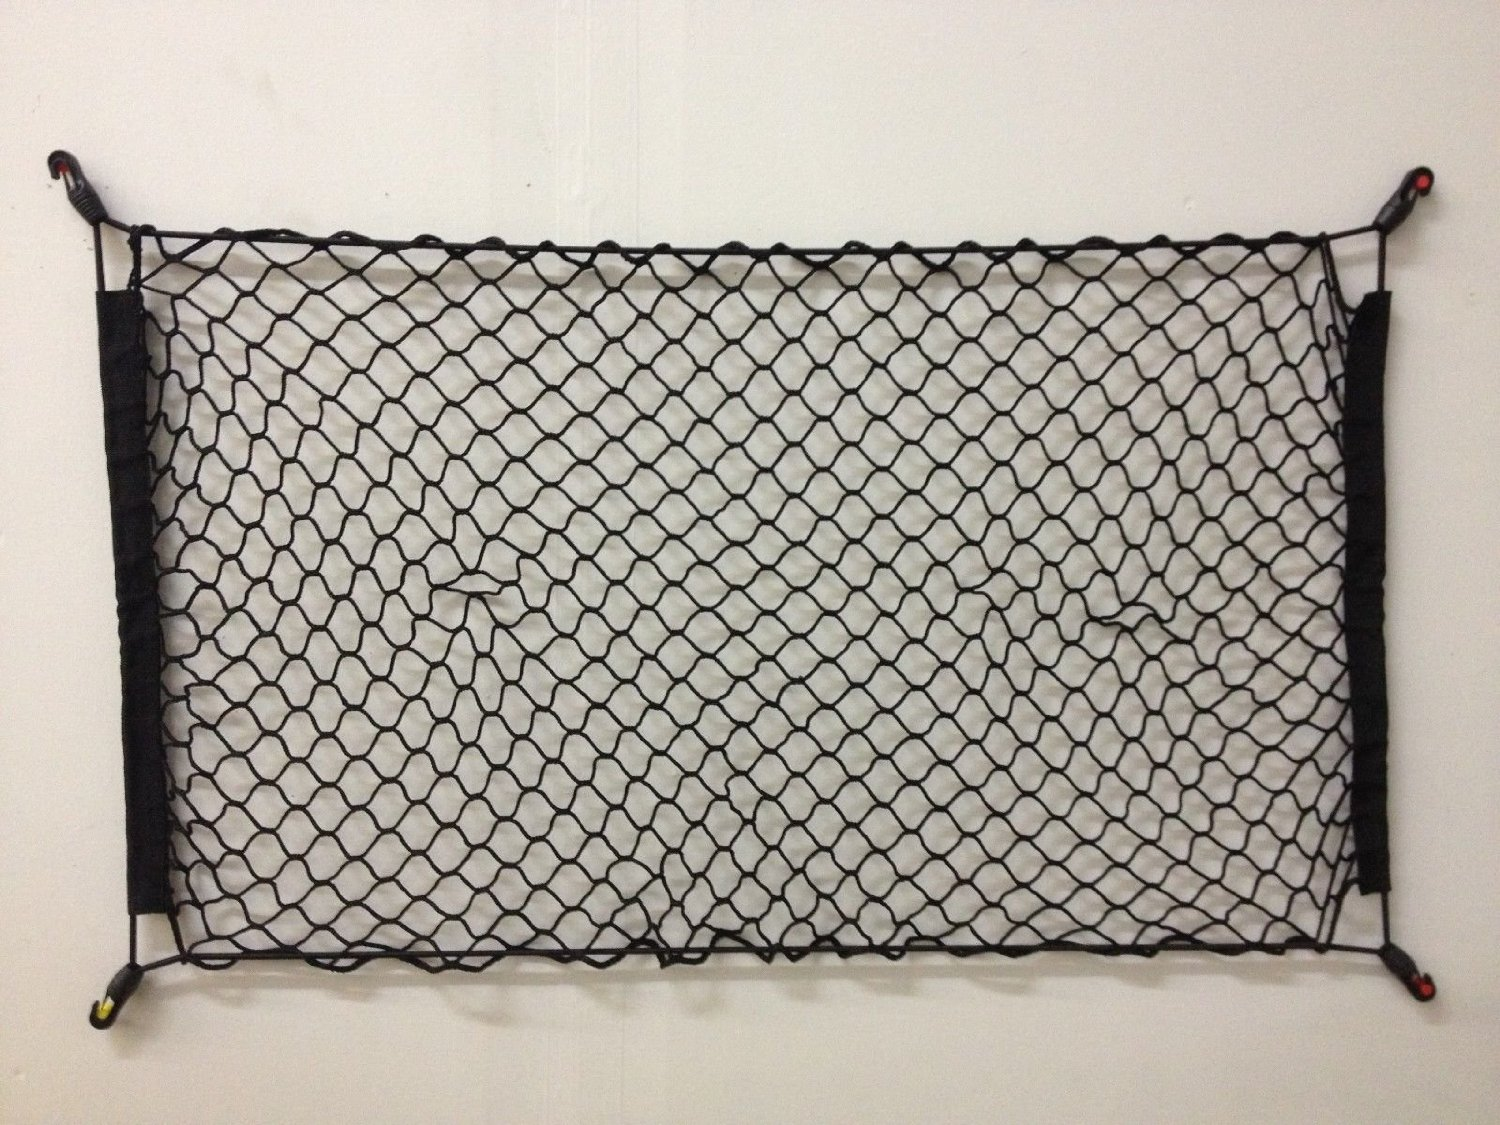 TRUNK FLOOR CARGO NET FOR CADILLAC CATERA 1997 98 99 00 2001 BRAND NEW